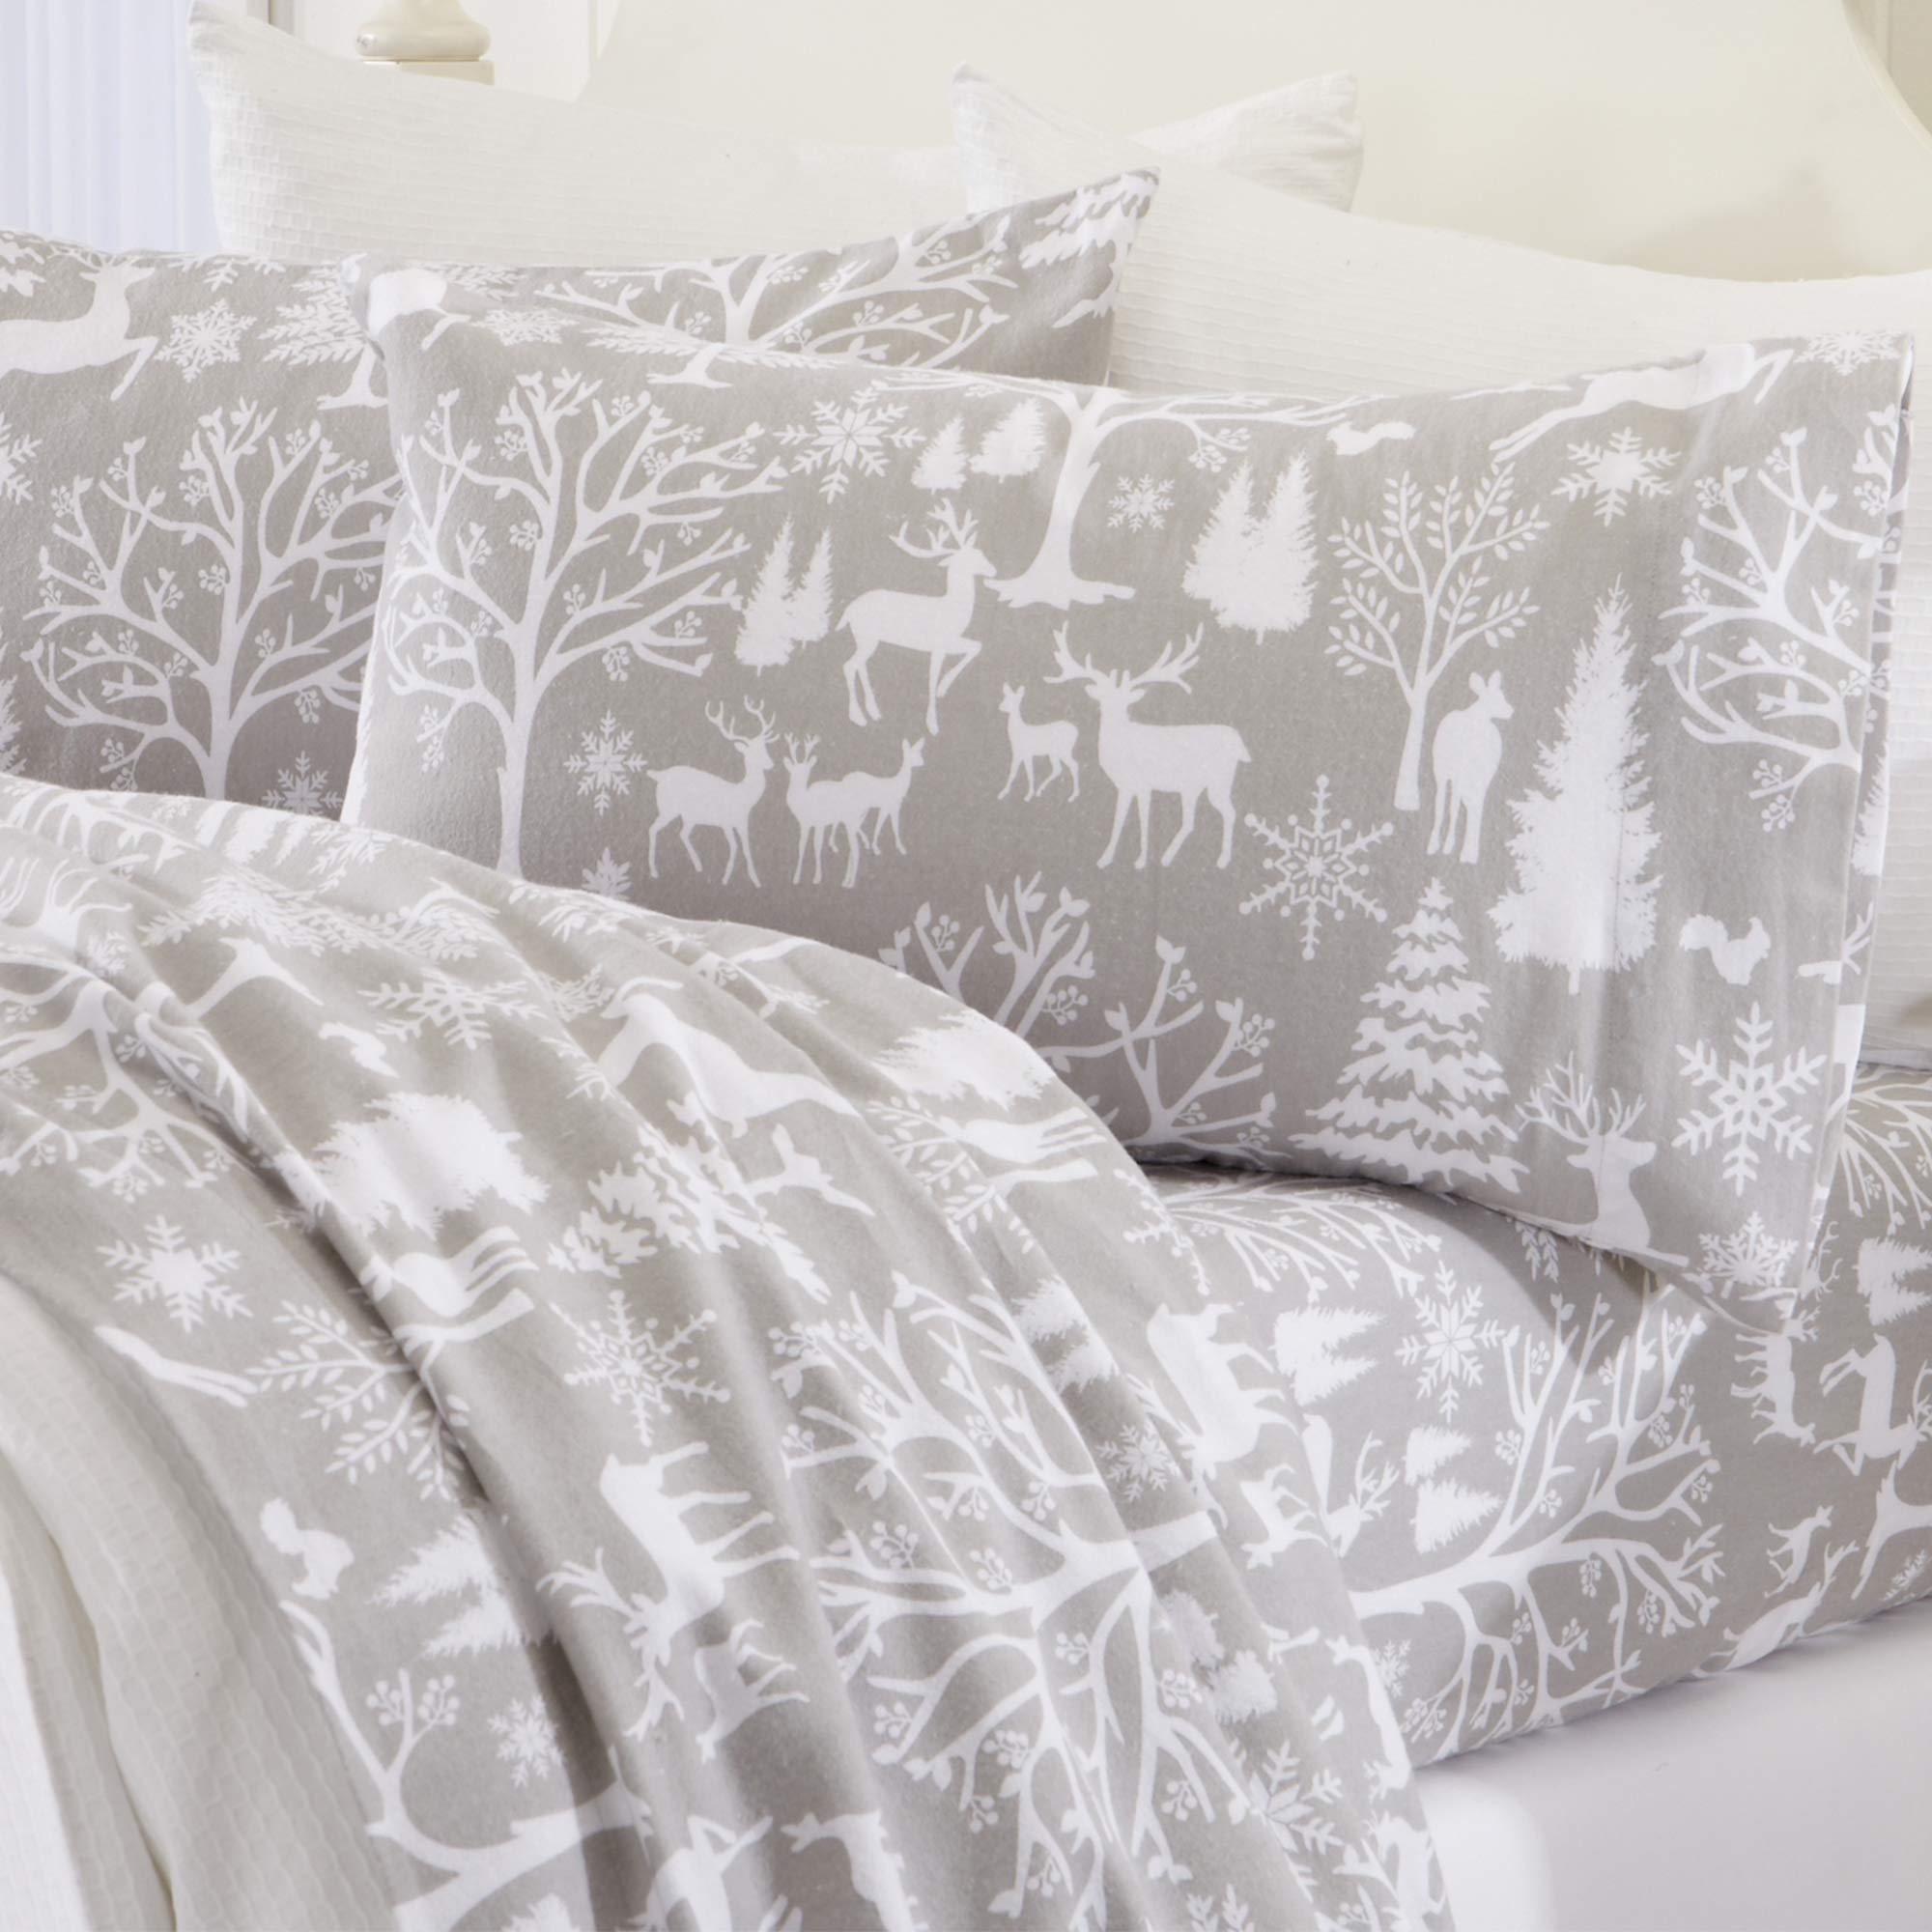 Great Bay Home Extra Soft Enchanted Woods 100% Turkish Cotton Flannel Sheet Set. Warm, Cozy, Luxury Winter Bed Sheets. Belle Collection (California King, Enchanted Woods)